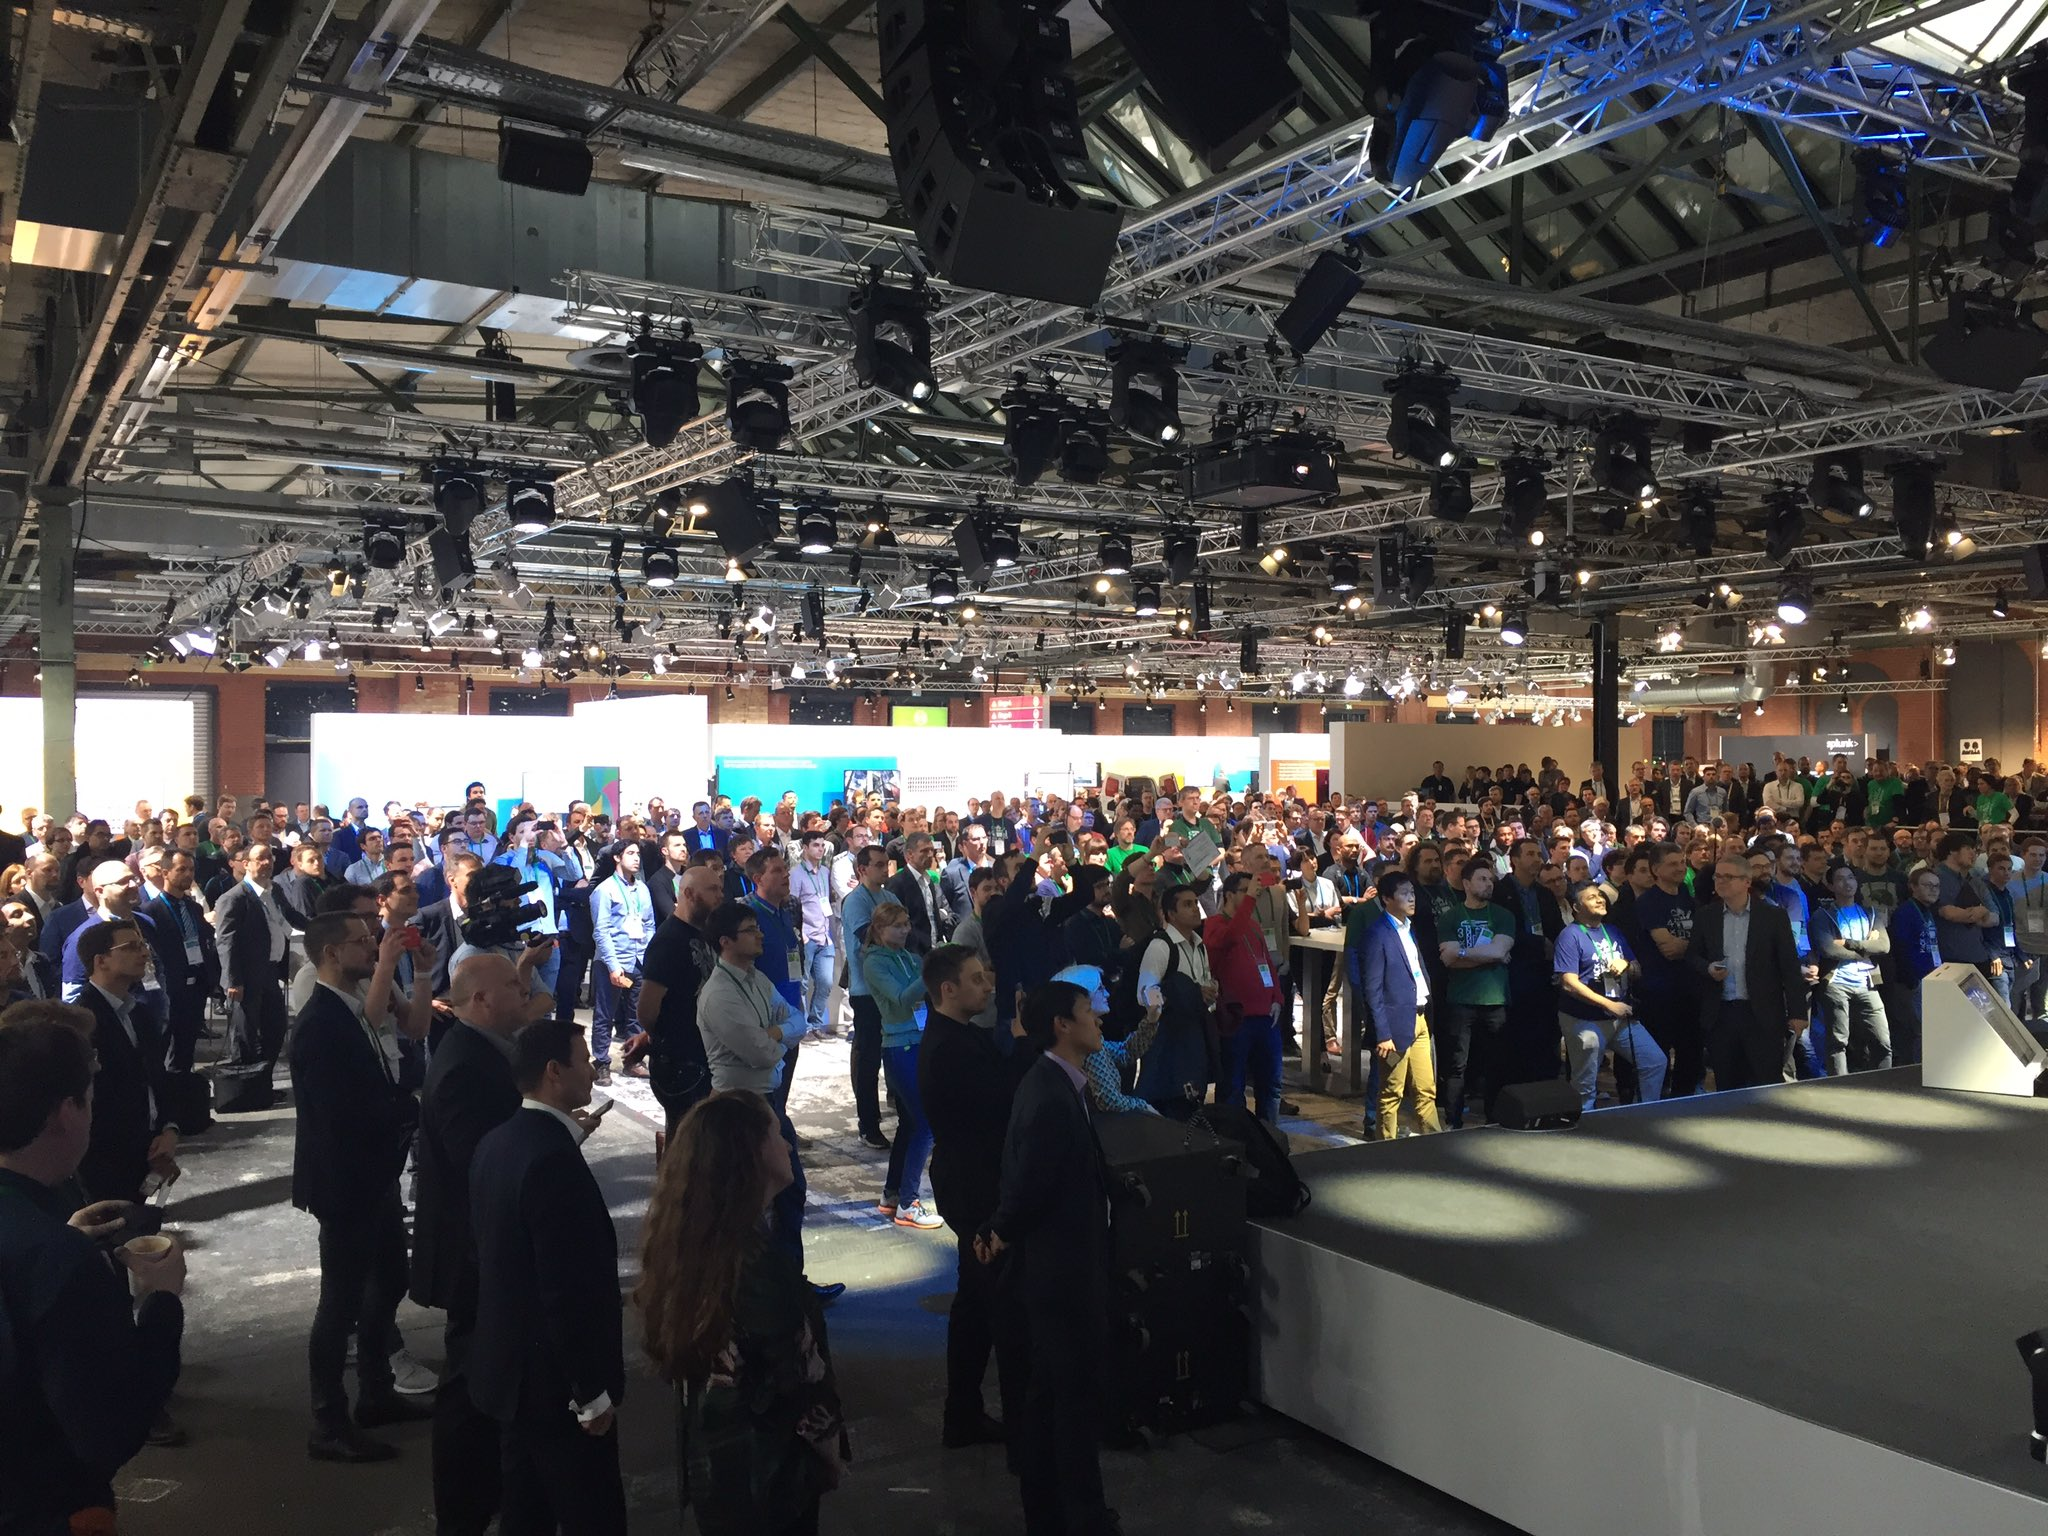 #BCX17 award ceremony - eight nominees for two finalists 1. In Technical brilliance 2. In Creativity. And the winner is ... #BCW17 @BoschSI https://t.co/iAUNnvwdBZ